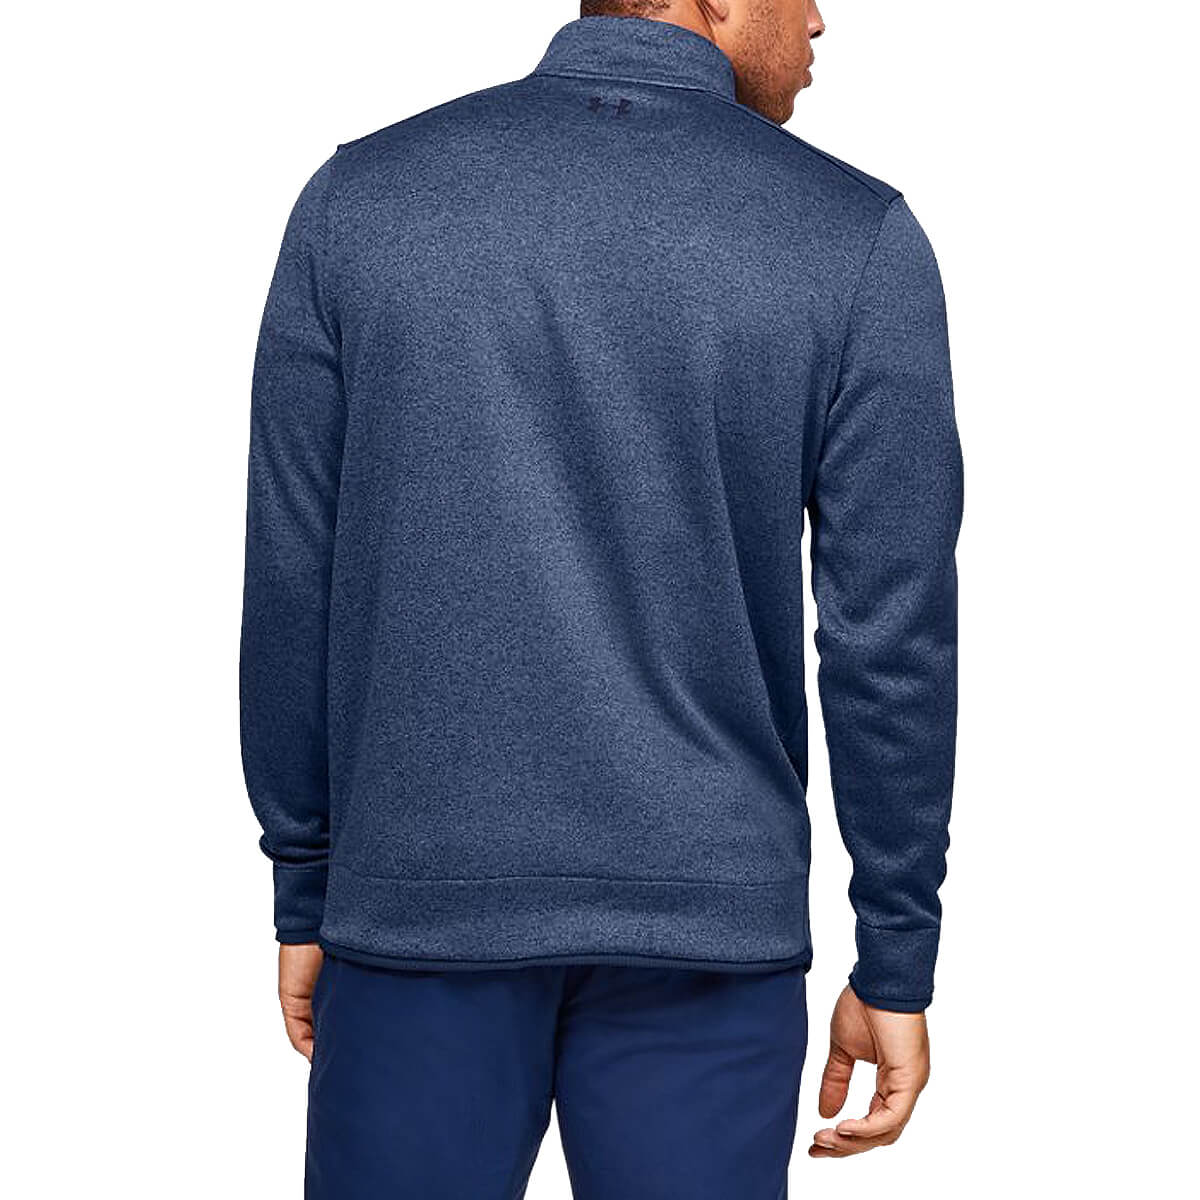 Under-Armour-Homme-UA-sweaterfleece-1-2-zip-resistant-a-l-039-eau-Pullover-40-OFF-RRP miniature 18